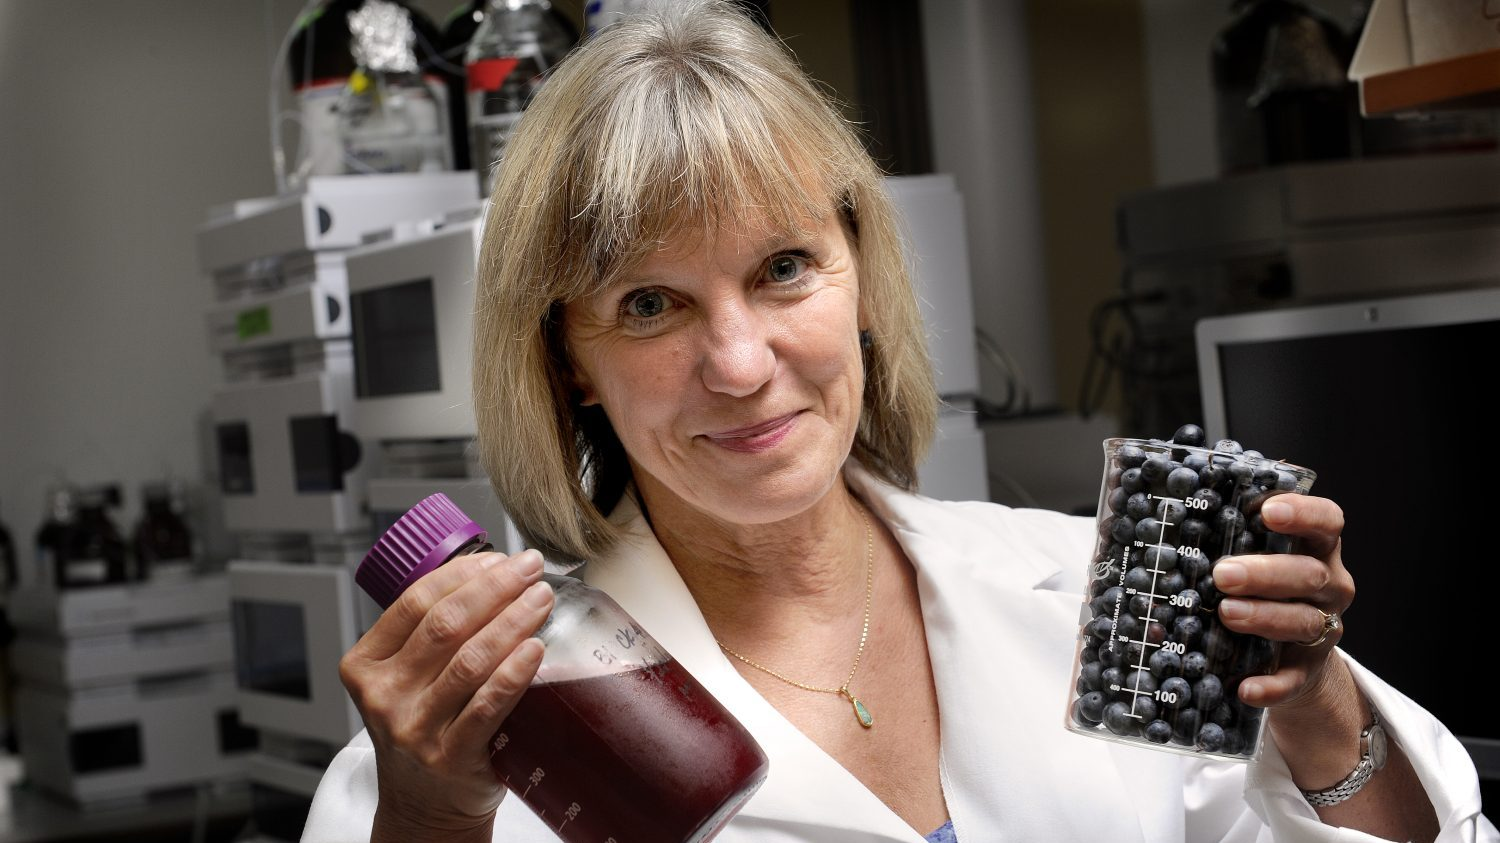 Professor in lab holding up blueberries and juice.